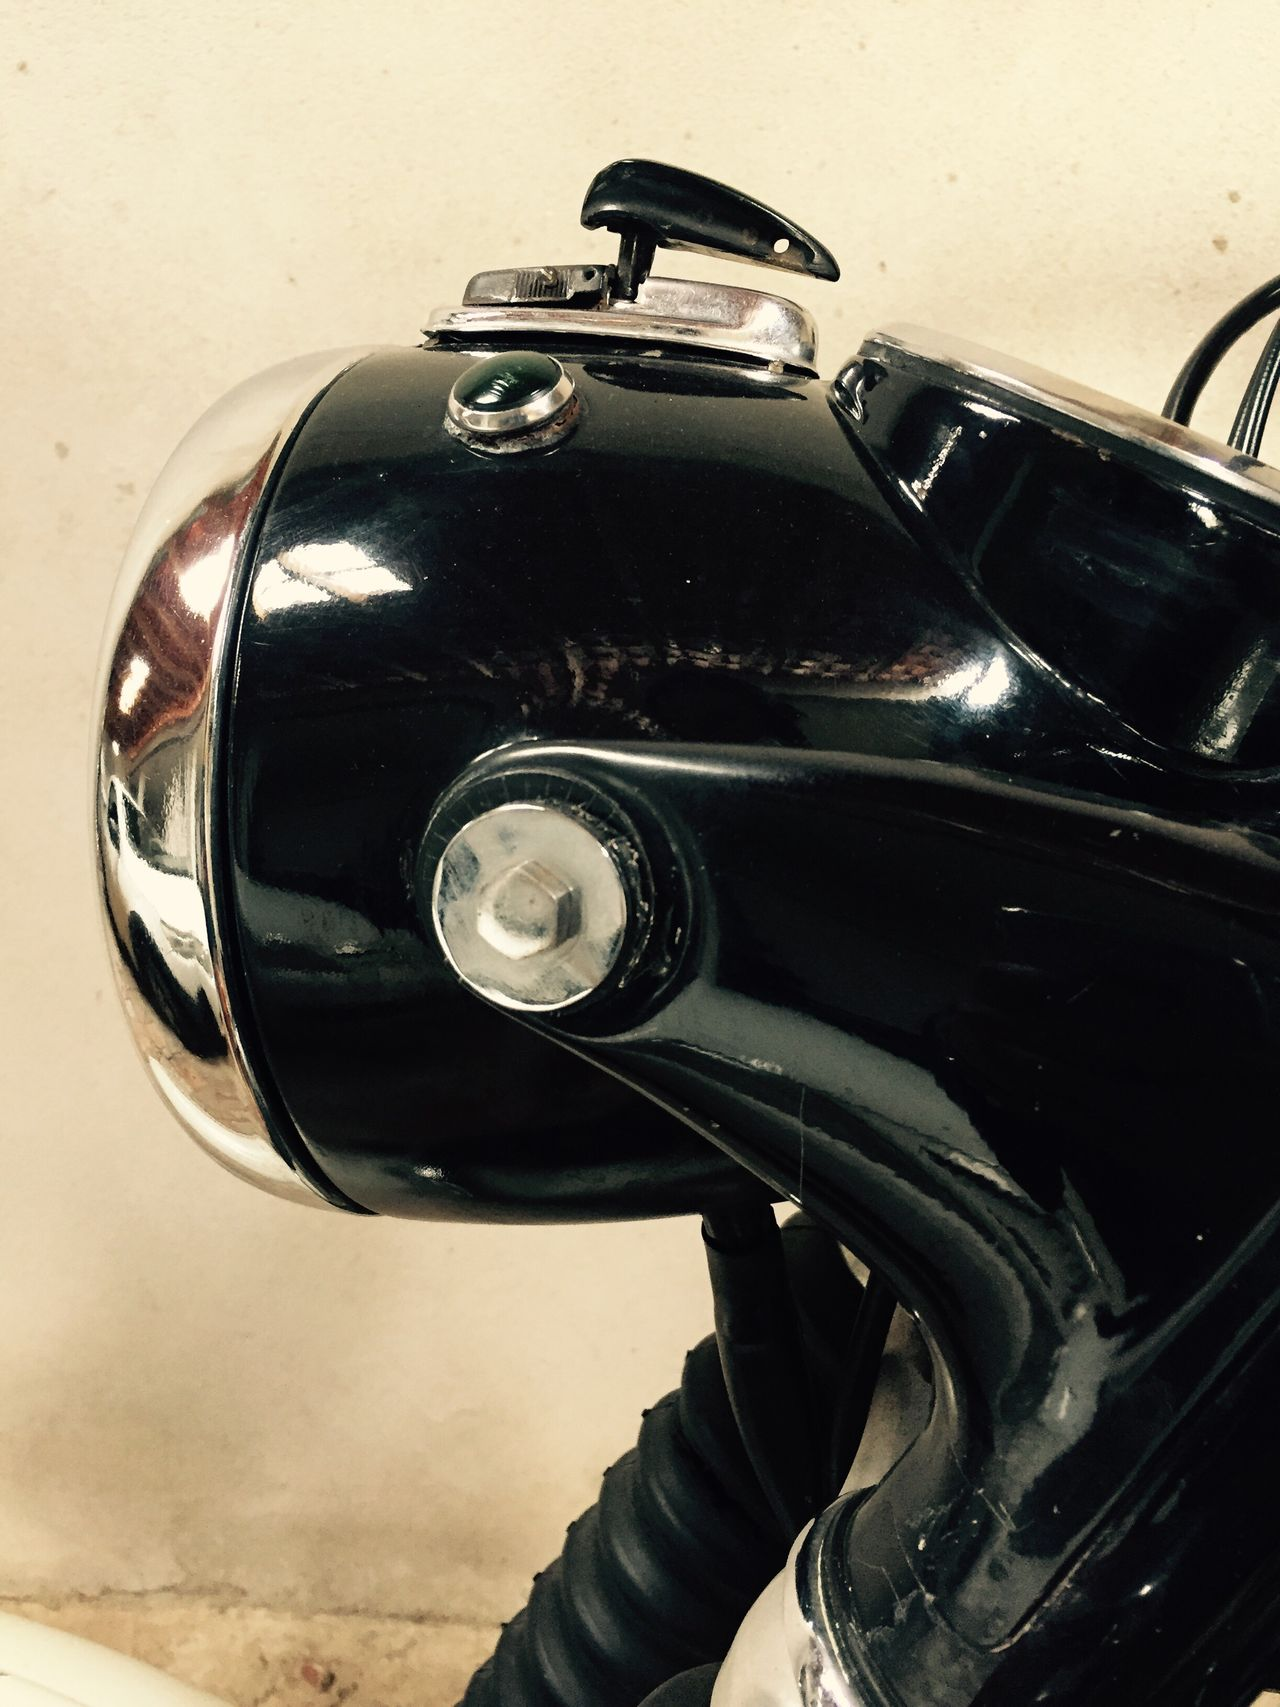 Close-up Motorcycle Parts BMW R75/5 Mororcycles Day No People Indoors  Tranport